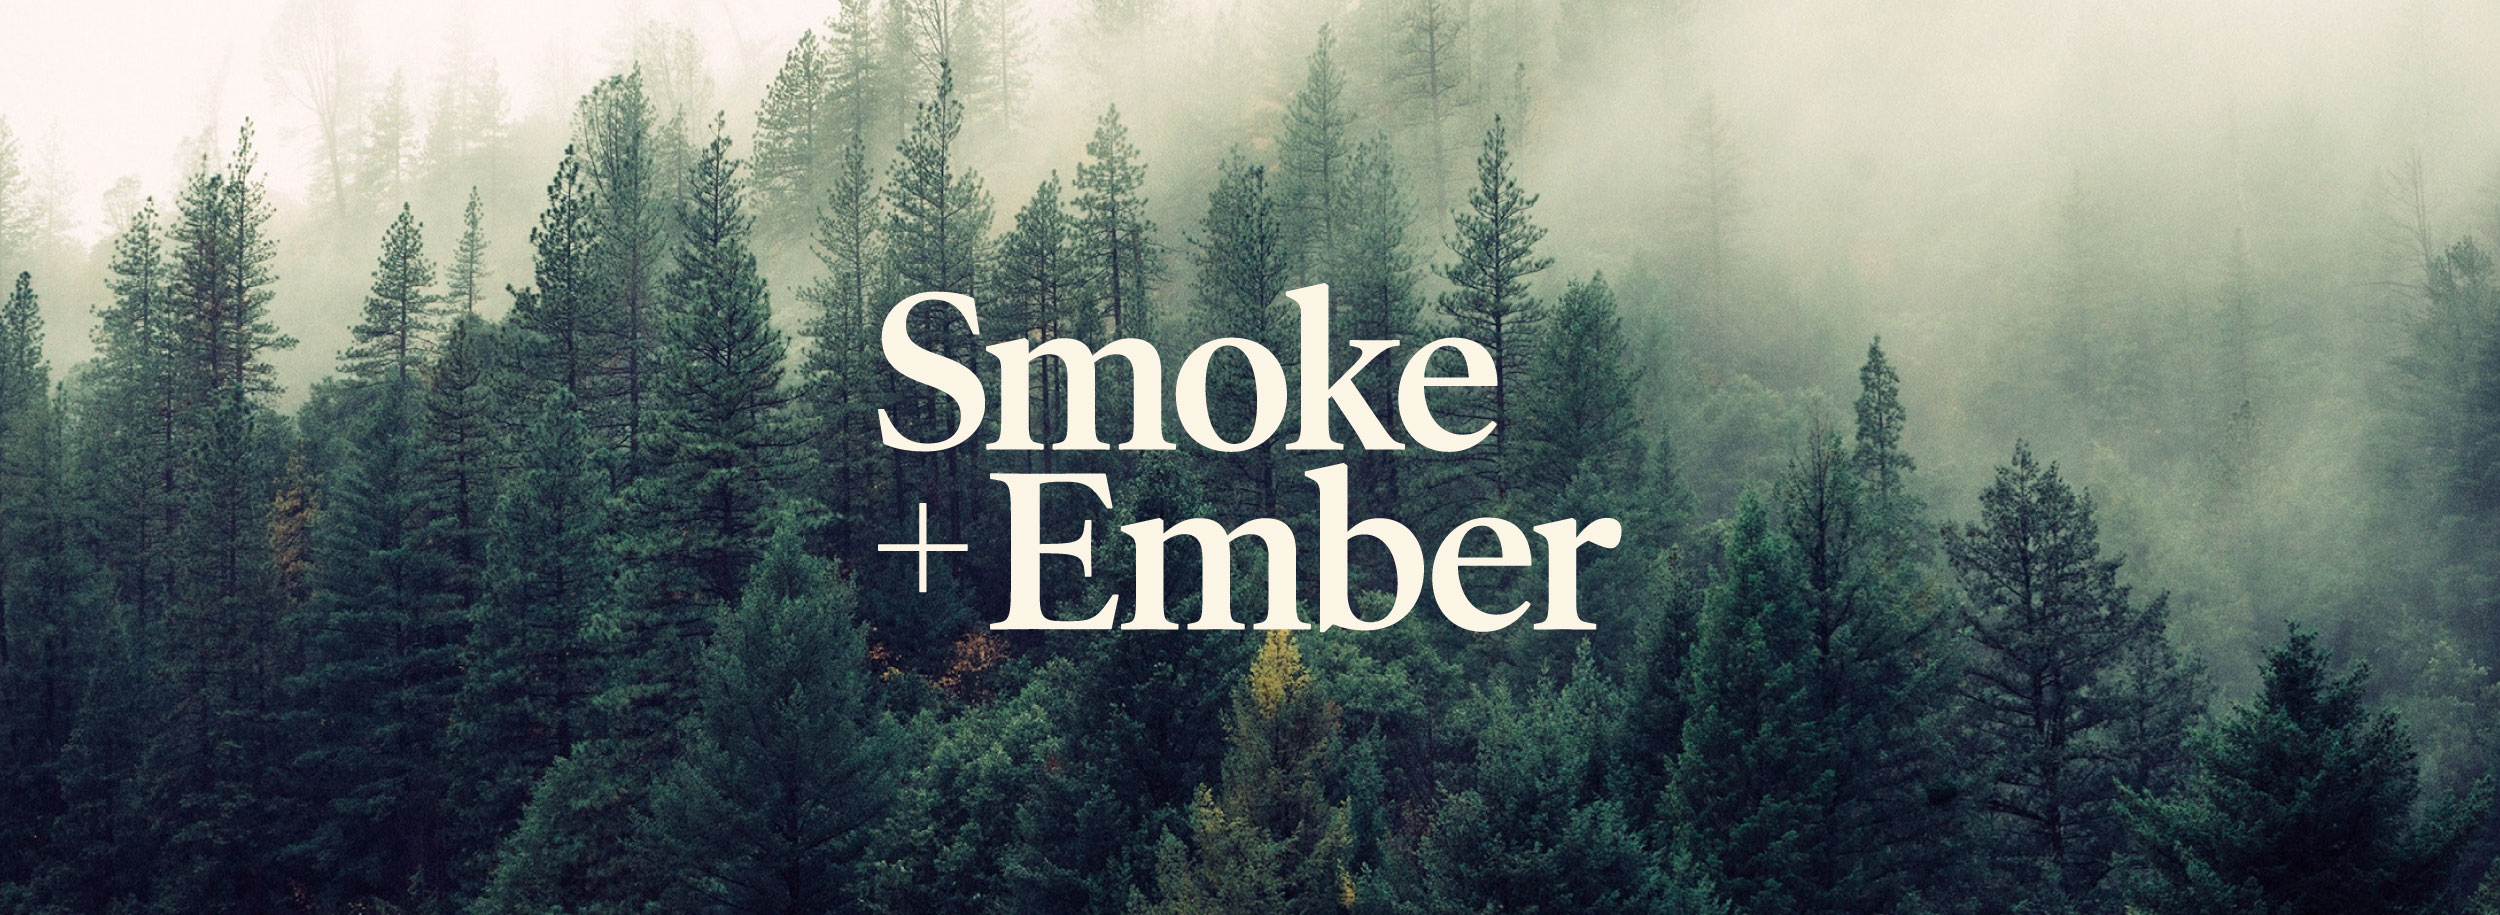 smoke-and-ember-logo.jpg